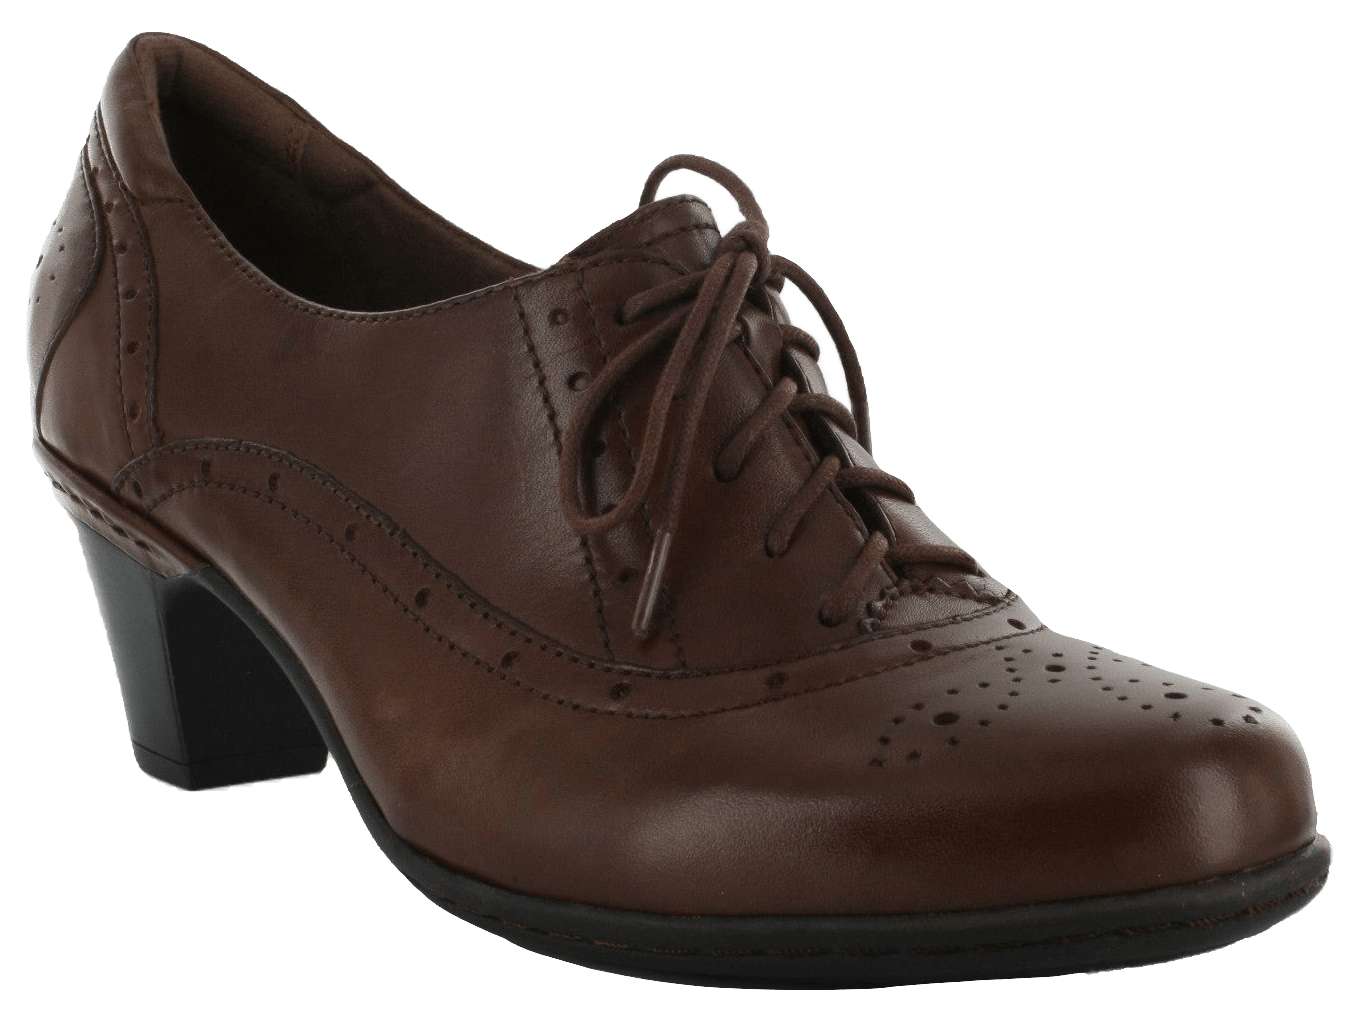 best casual shoes for orthotics